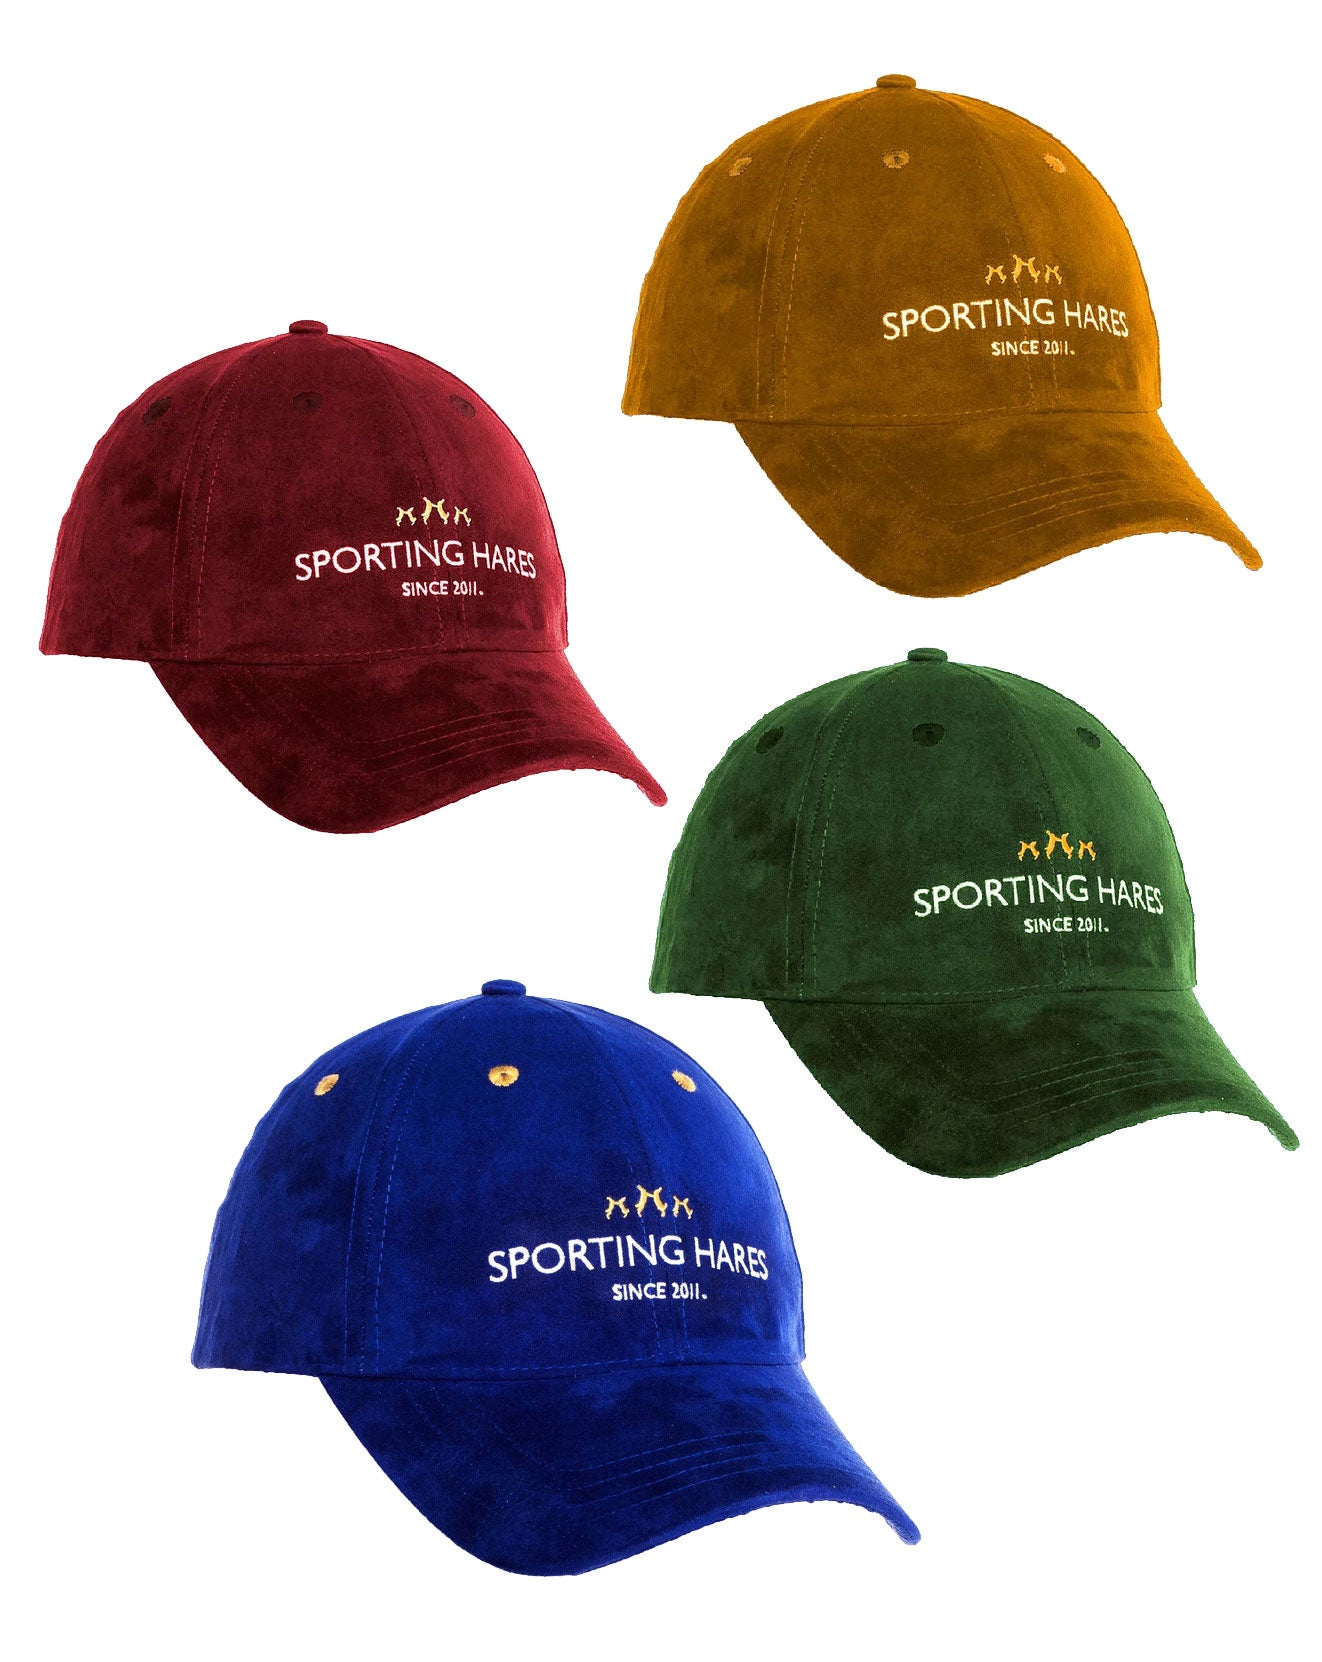 Sporting Hares Collection Hat | Colour: Navy, Honey Tan, Oxblood Red, Emerald Green